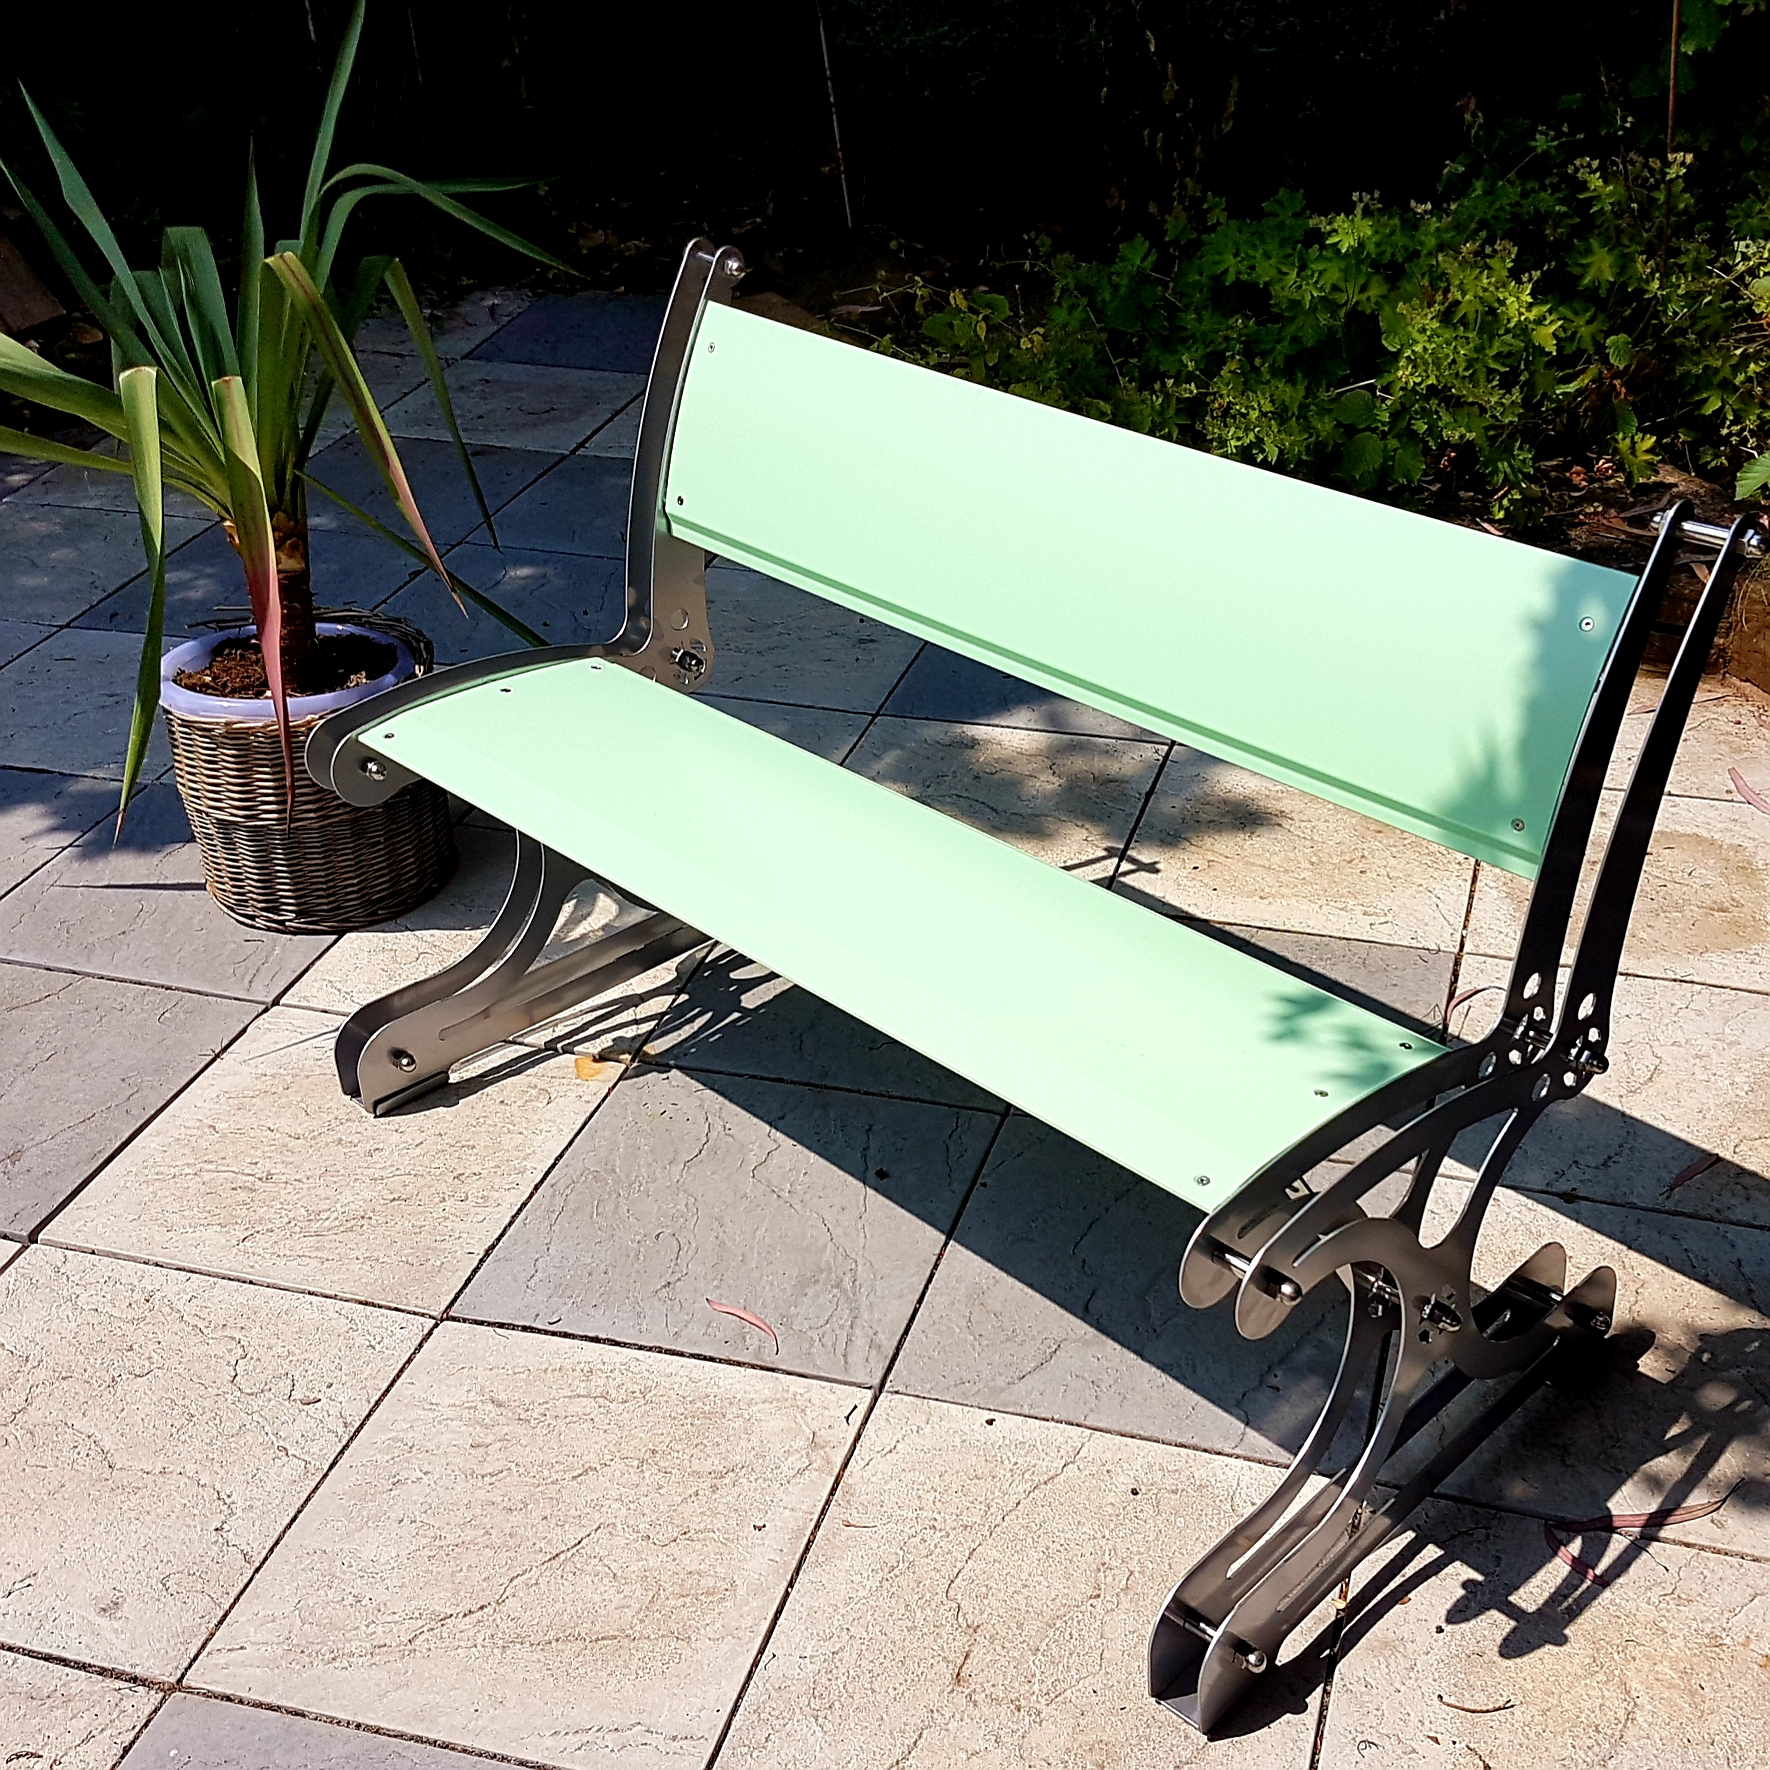 Aero Bench. New 'Elizabeth line' pastel colours for you. Exclusive garden furniture.